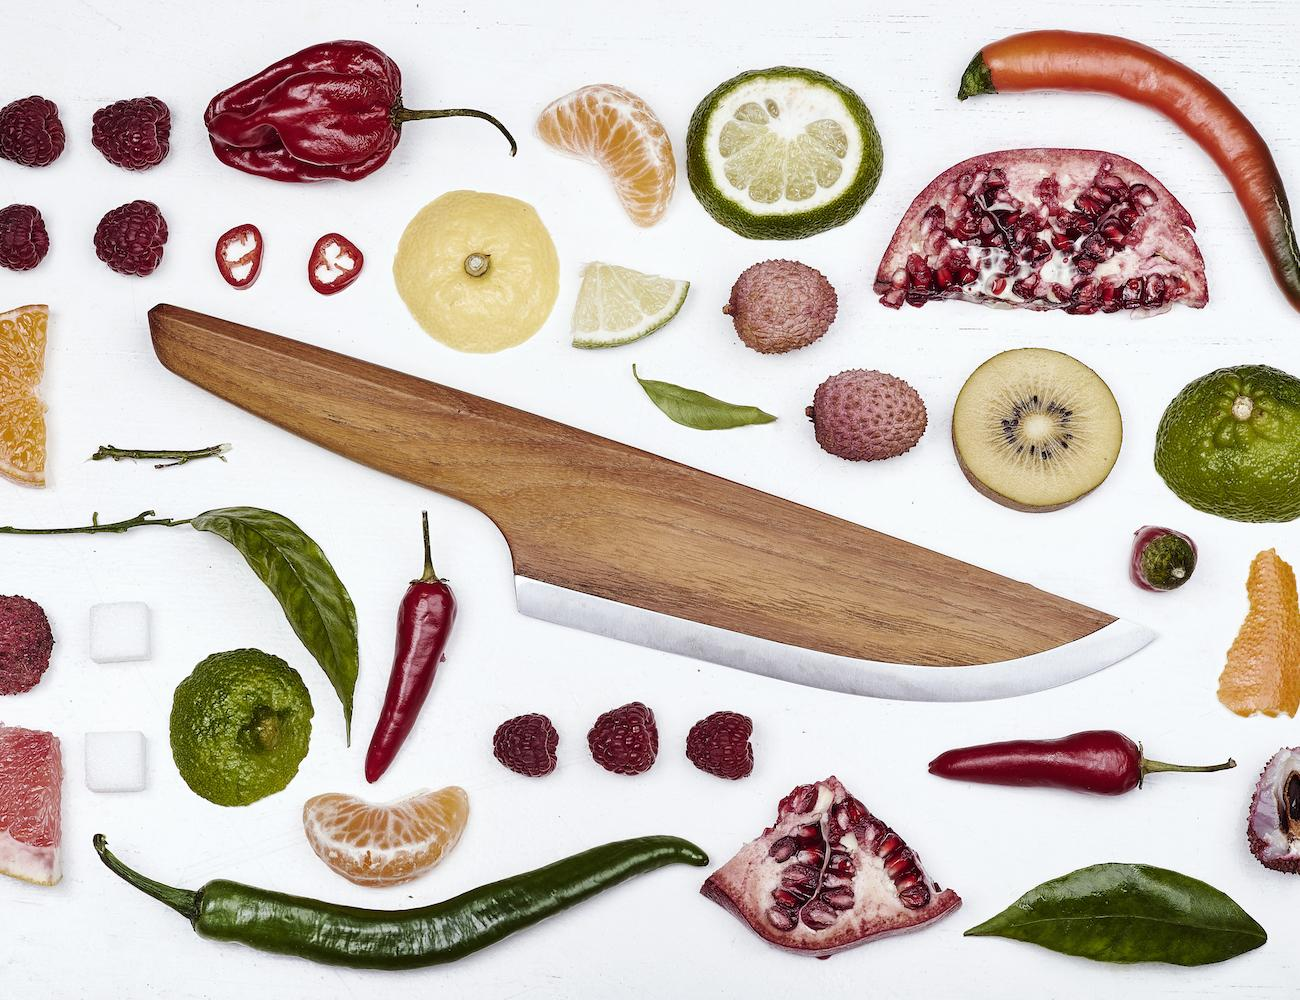 SKID Wooden Chef Knife: Form Beyond Function.